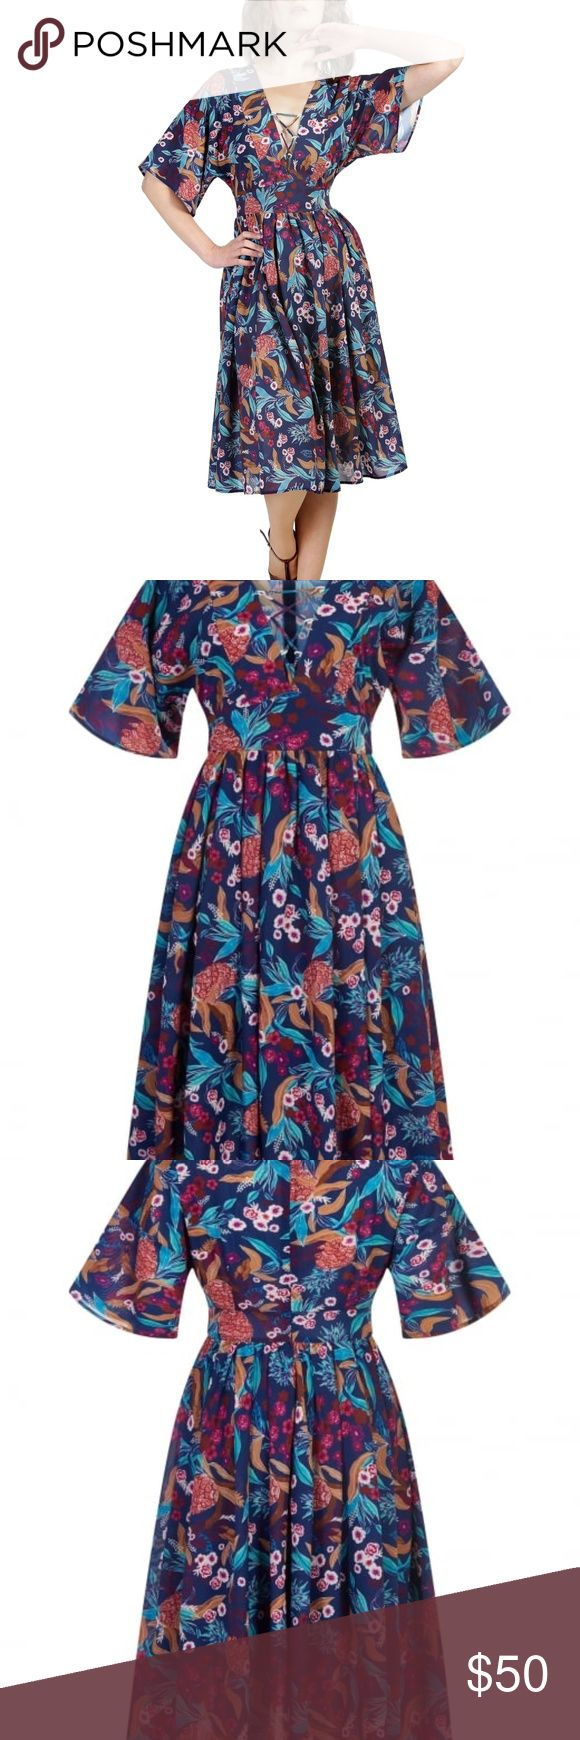 """Collectif Cathy Tropical Pineapple Dress Brand new with tags. Floaty kimono sleeves, panelled V neckline with lace up front, and a curved waistband. Her full skirt is gently gathered, and she fastens with a centre back zip. Cathy is made in our bespoke Tropical Pineapple fabric, a navy chiffon printed with vibrant blue leaves, red cherry blossoms, and quirky orange pineapples.  US size 6 / UK 10. 28"""" waist, 34"""" - 36"""" bust, 44"""" length Bright and Beautiful Dresses Midi"""